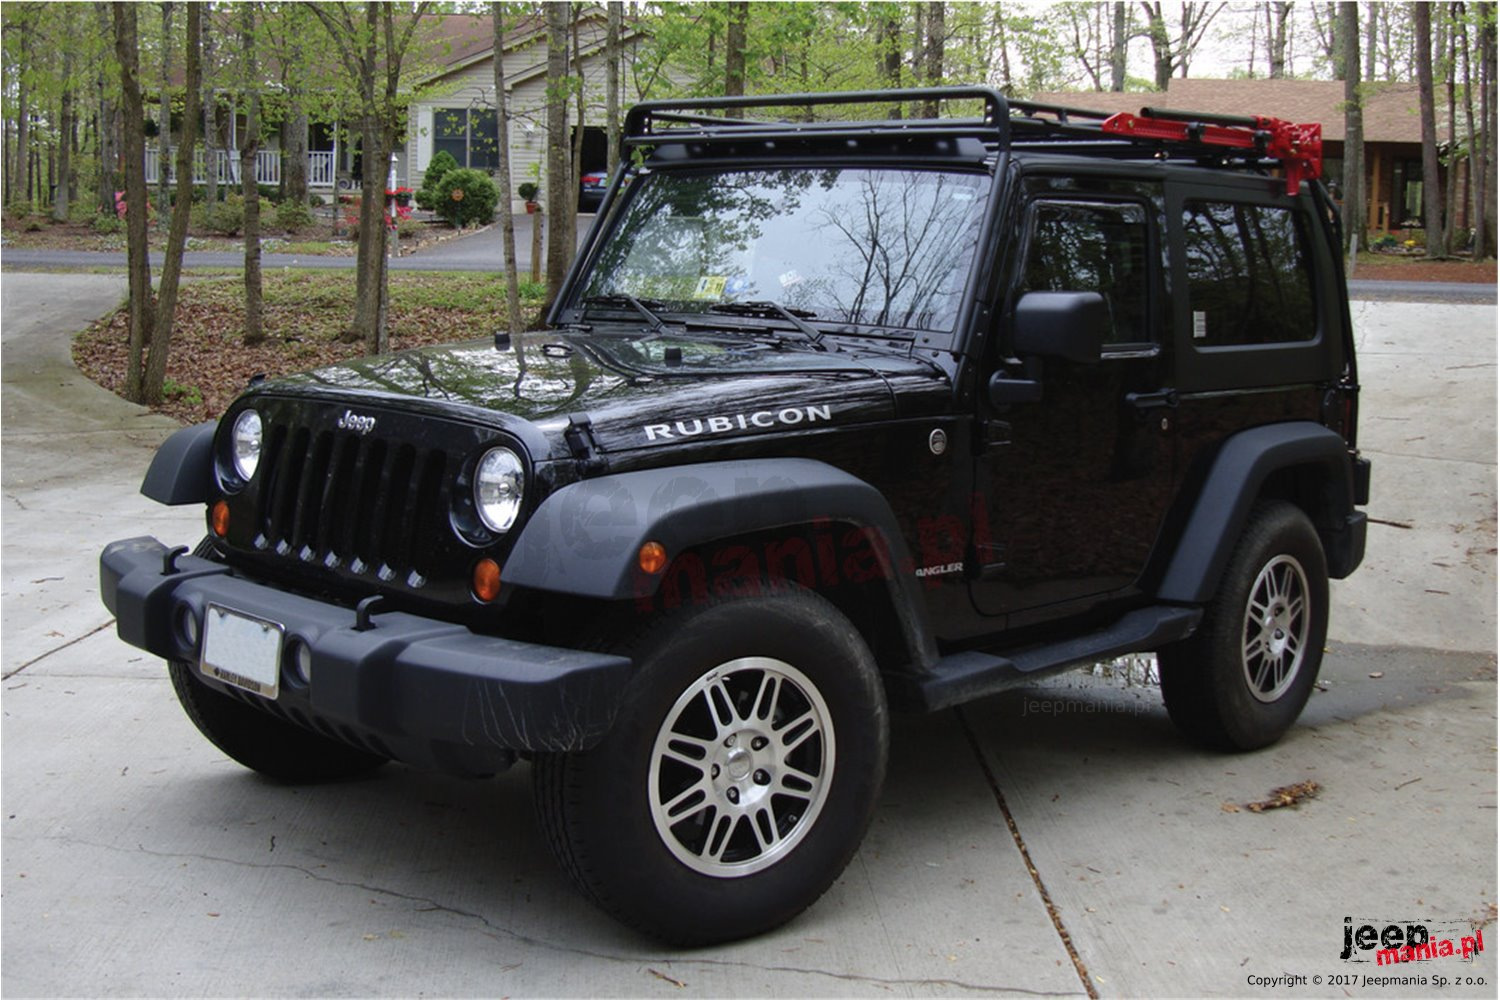 Roof Rack Stealth Led Bar Jeep Wrangler Jk 2 Doors